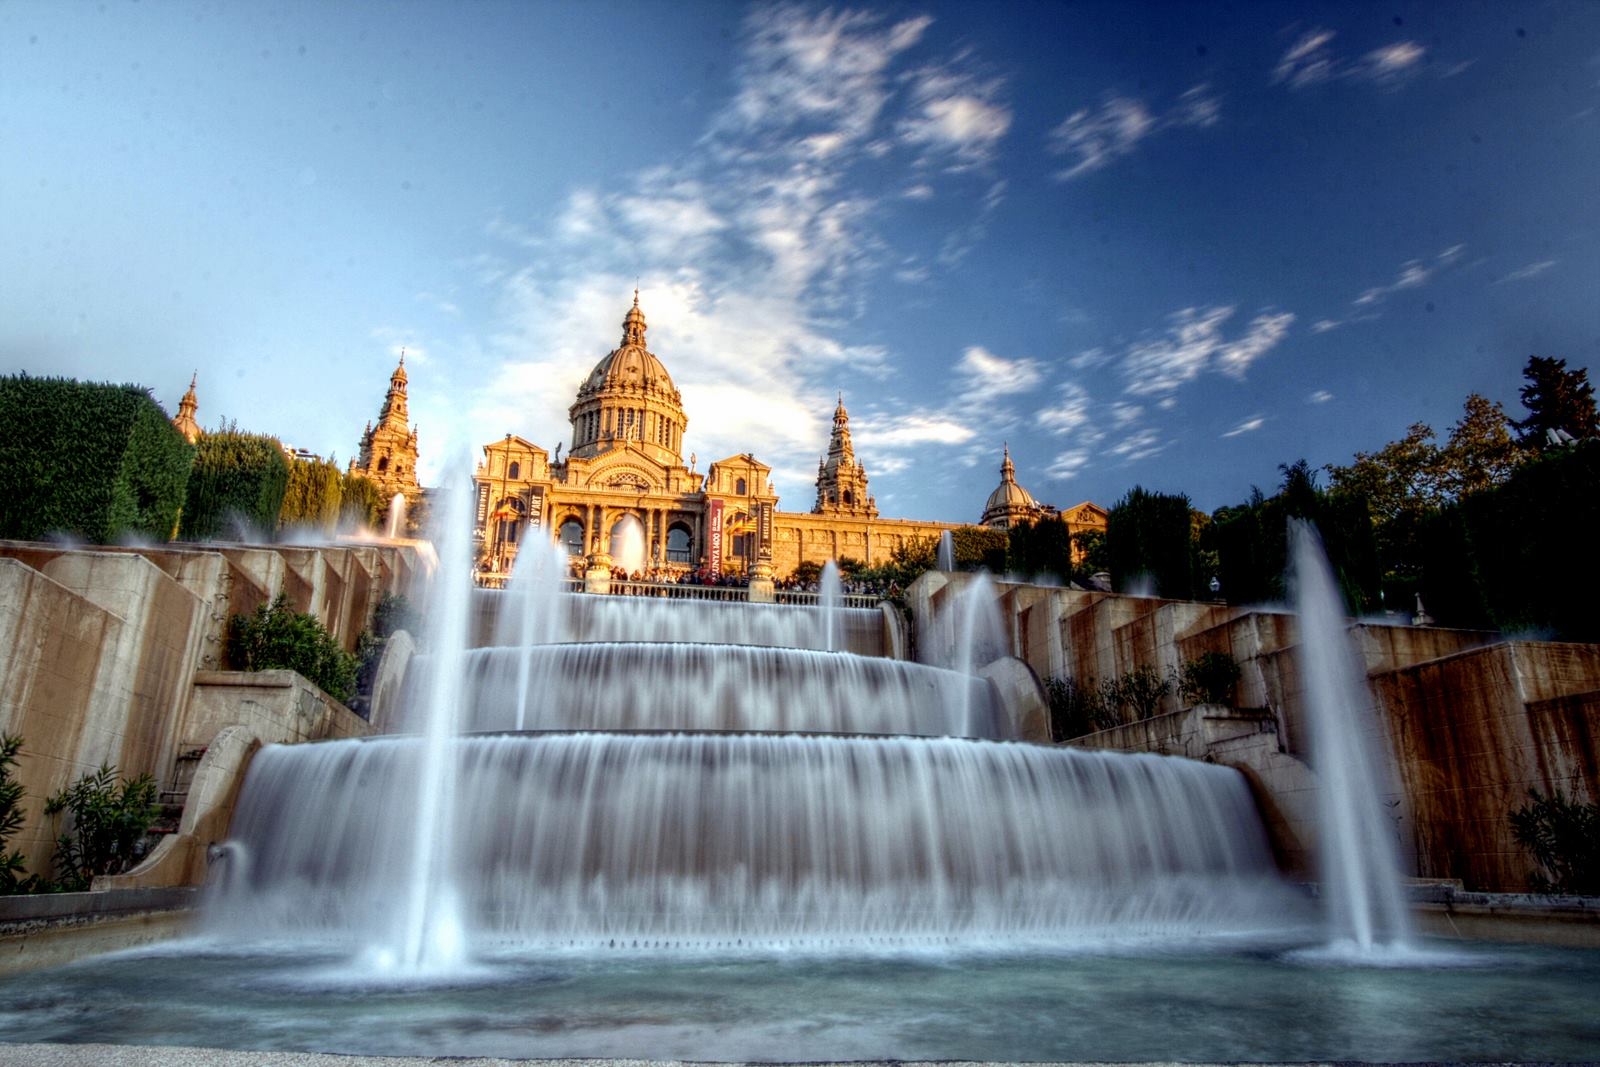 20. Magic Fountain, Barcelona, Spain.